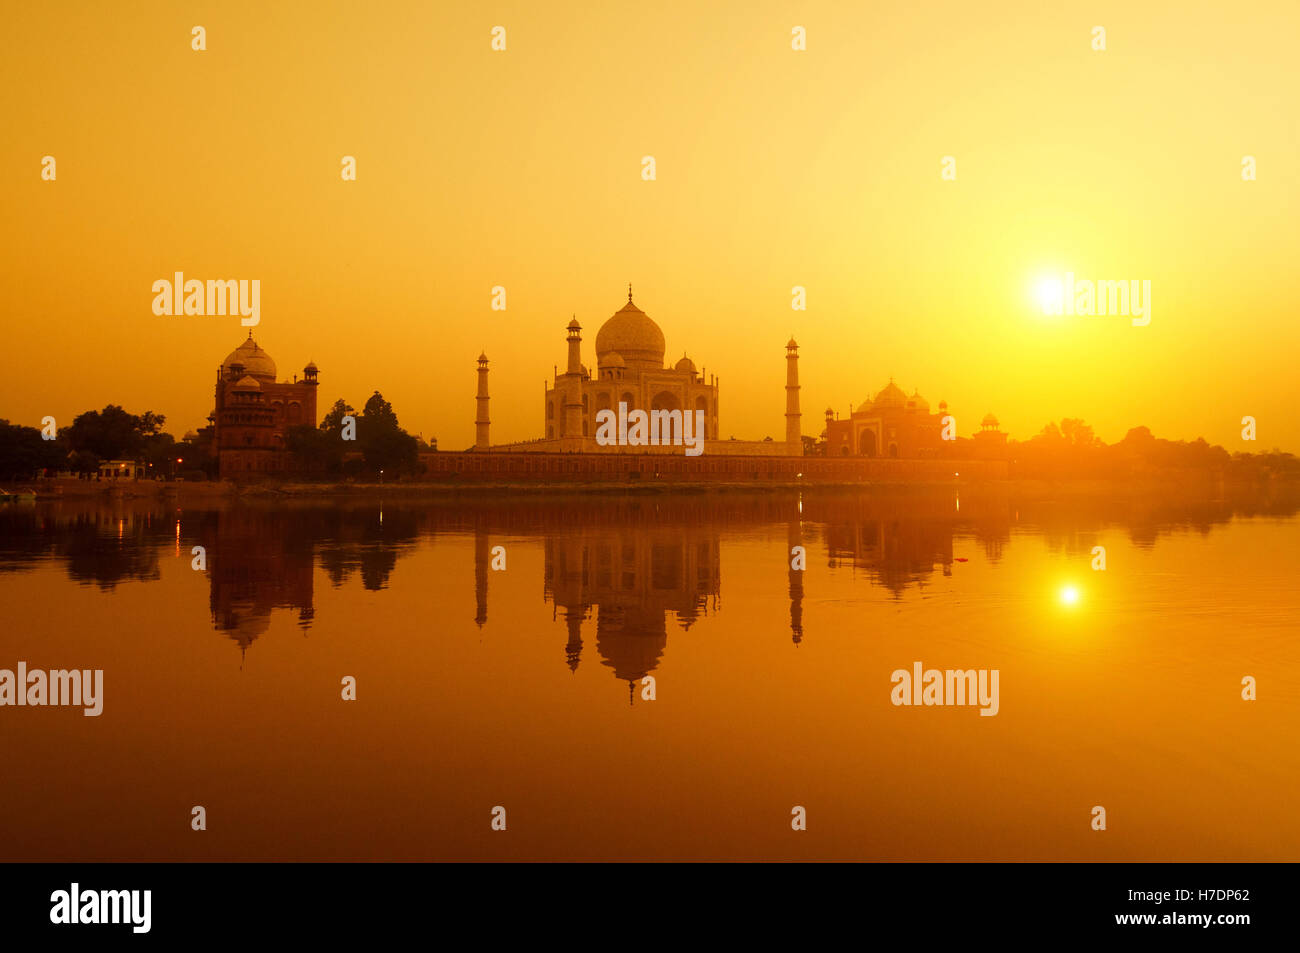 Taj Mahal from yamuna river view - Stock Image